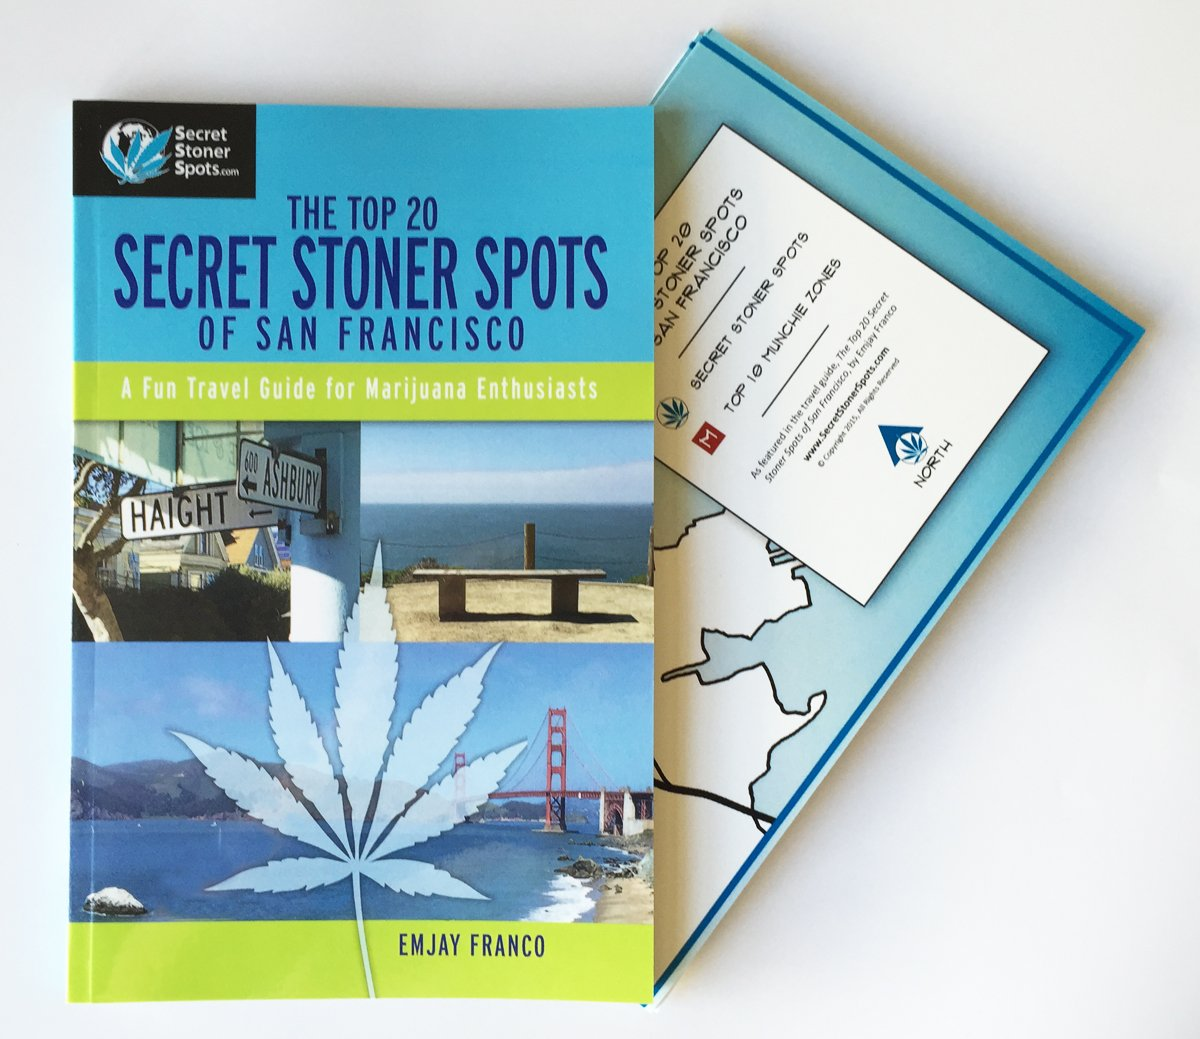 The Top 20 Secret Stoner Spots of San Francisco - Premium Collector's Edition PDF